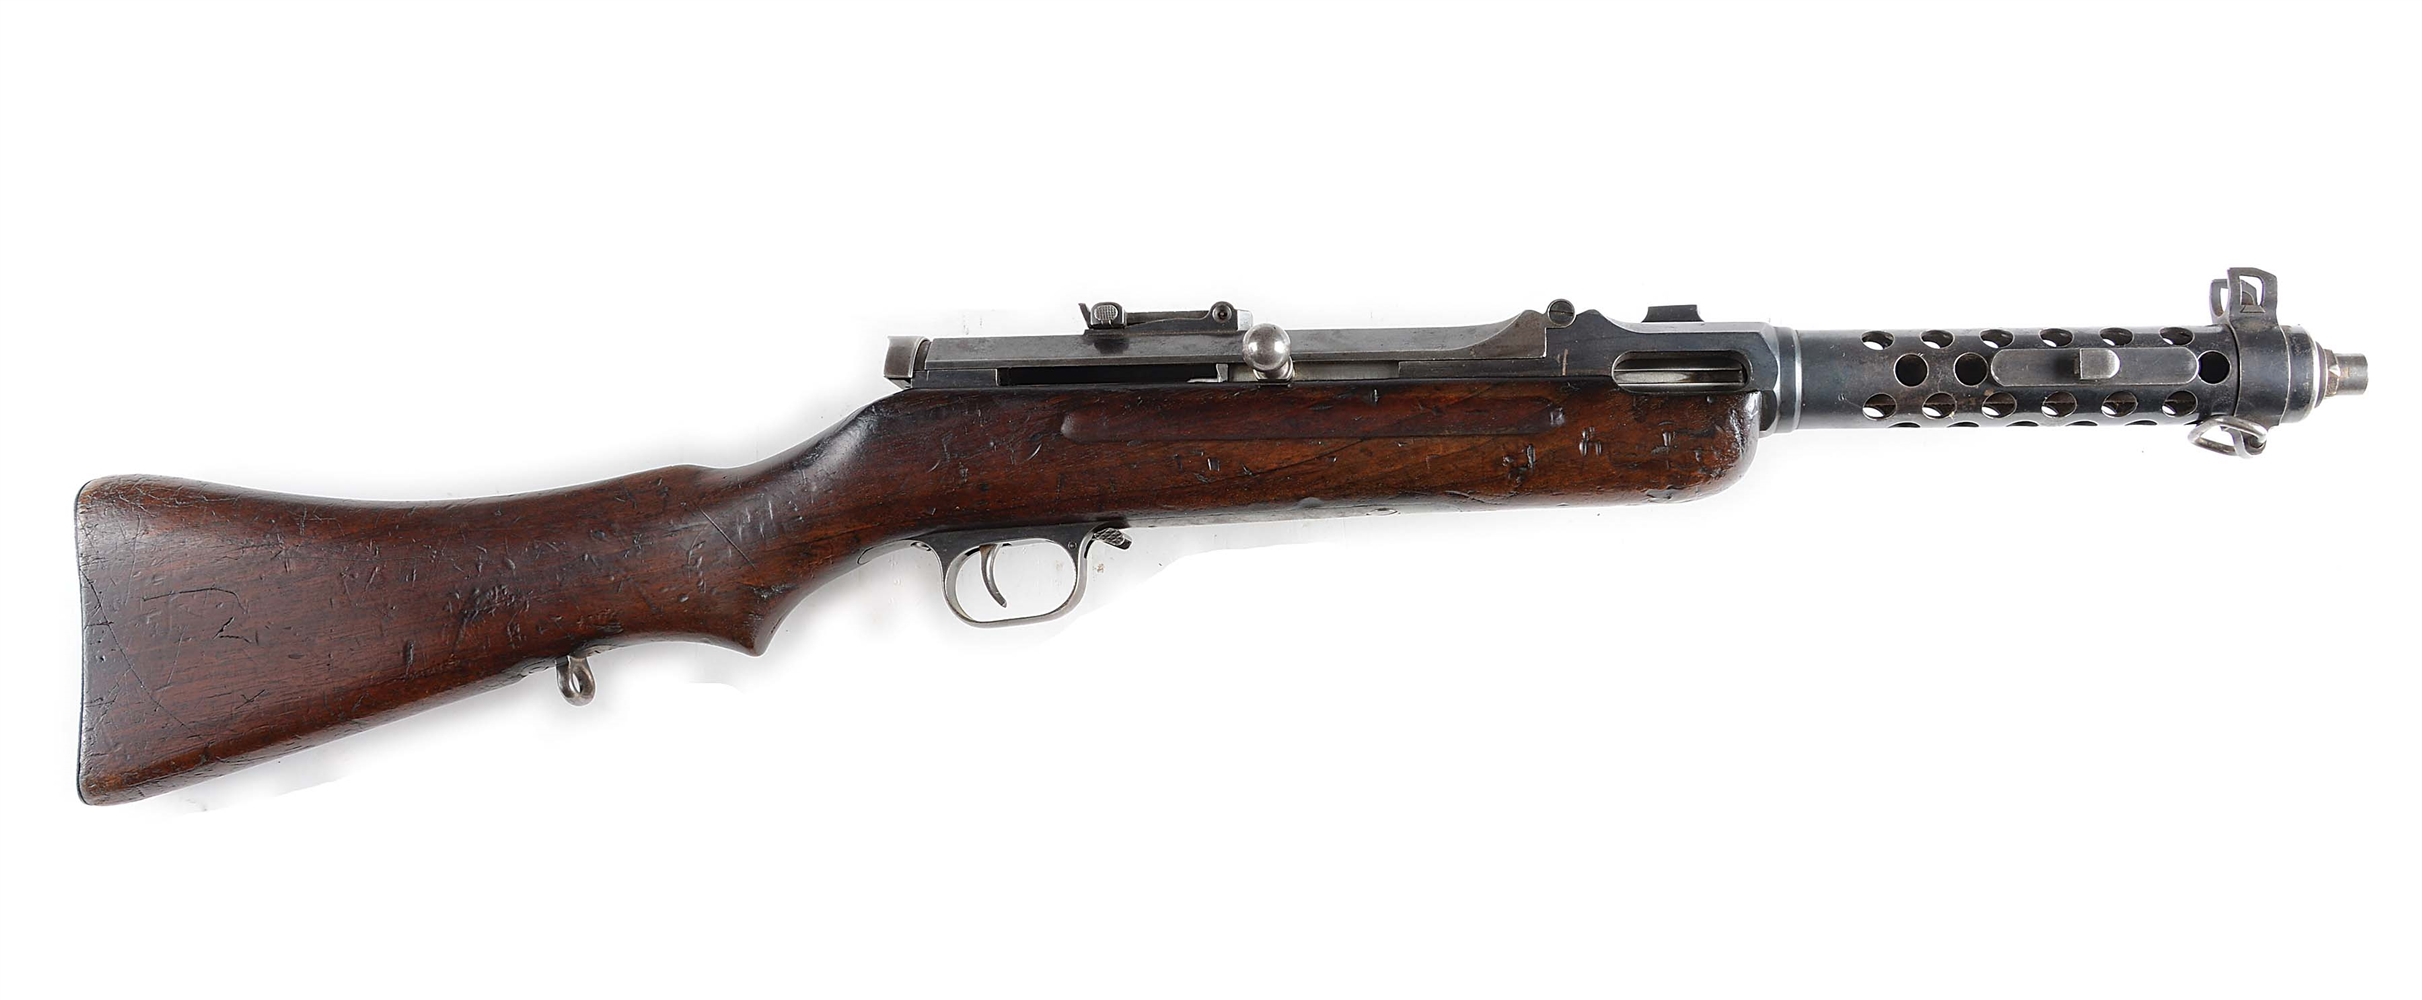 (N) REGISTERED DEACTIVATED STEYR MP30 (GERMAN WW2 MP-34O PREDECESSOR) MACHINE GUN (CURIO & RELIC)(DEACTIVATED STATUS)